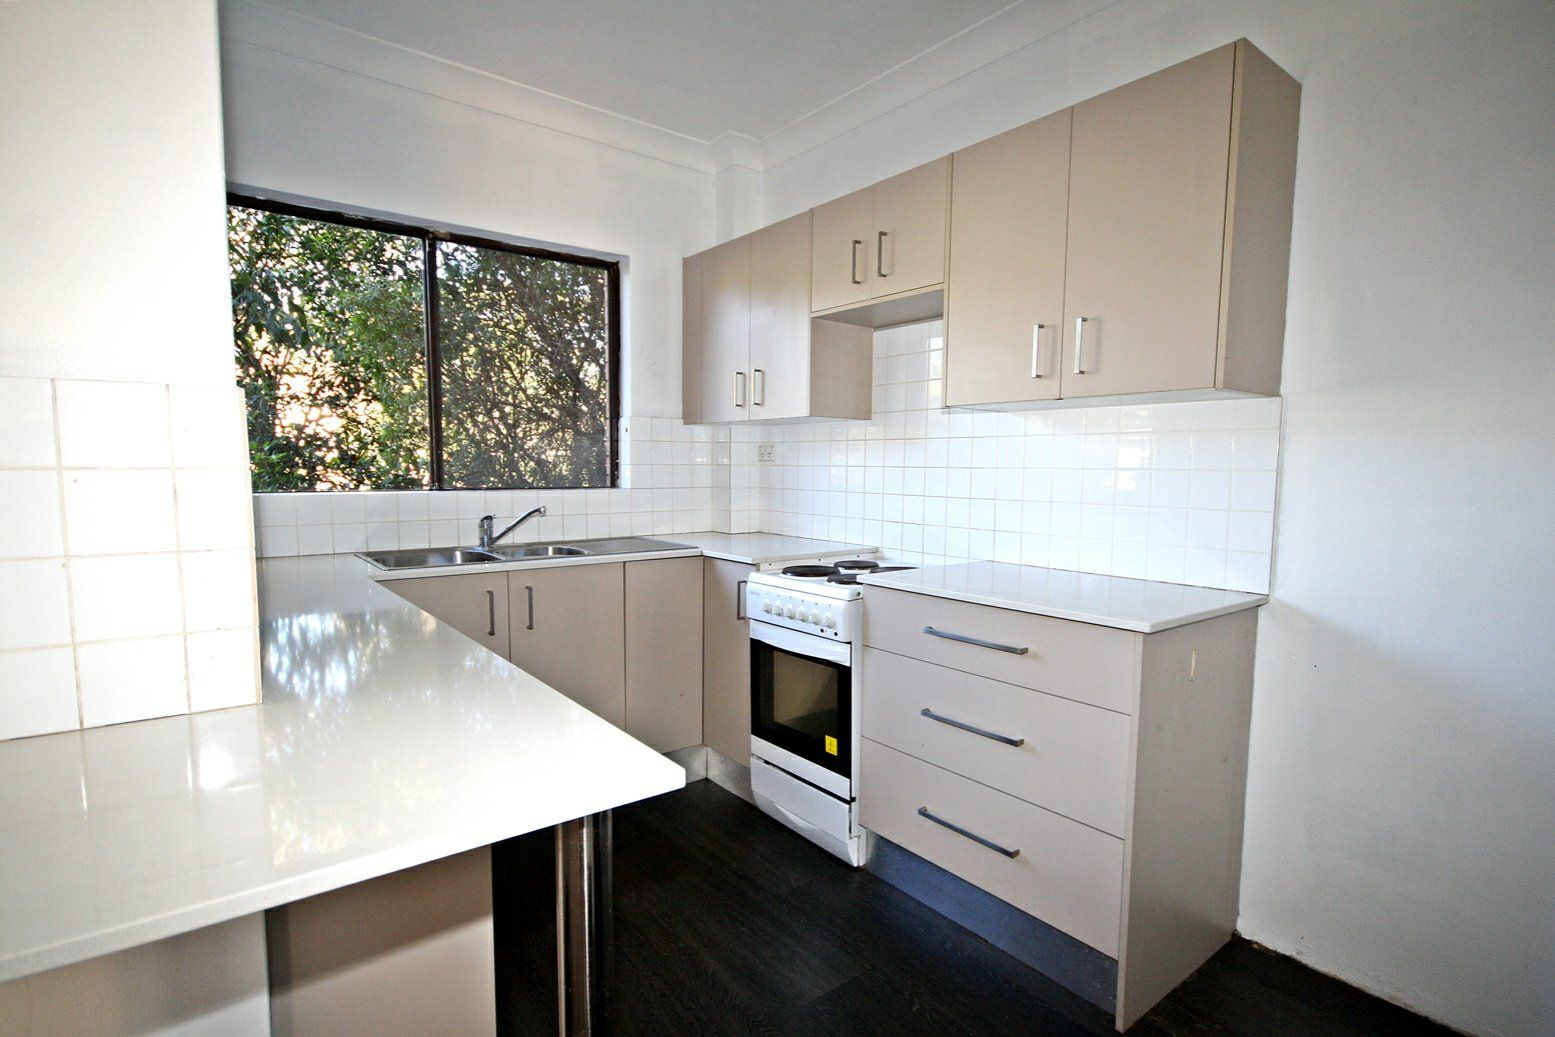 4/6 'The Grove' Skellatar Street, Muswellbrook NSW 2333, Image 2